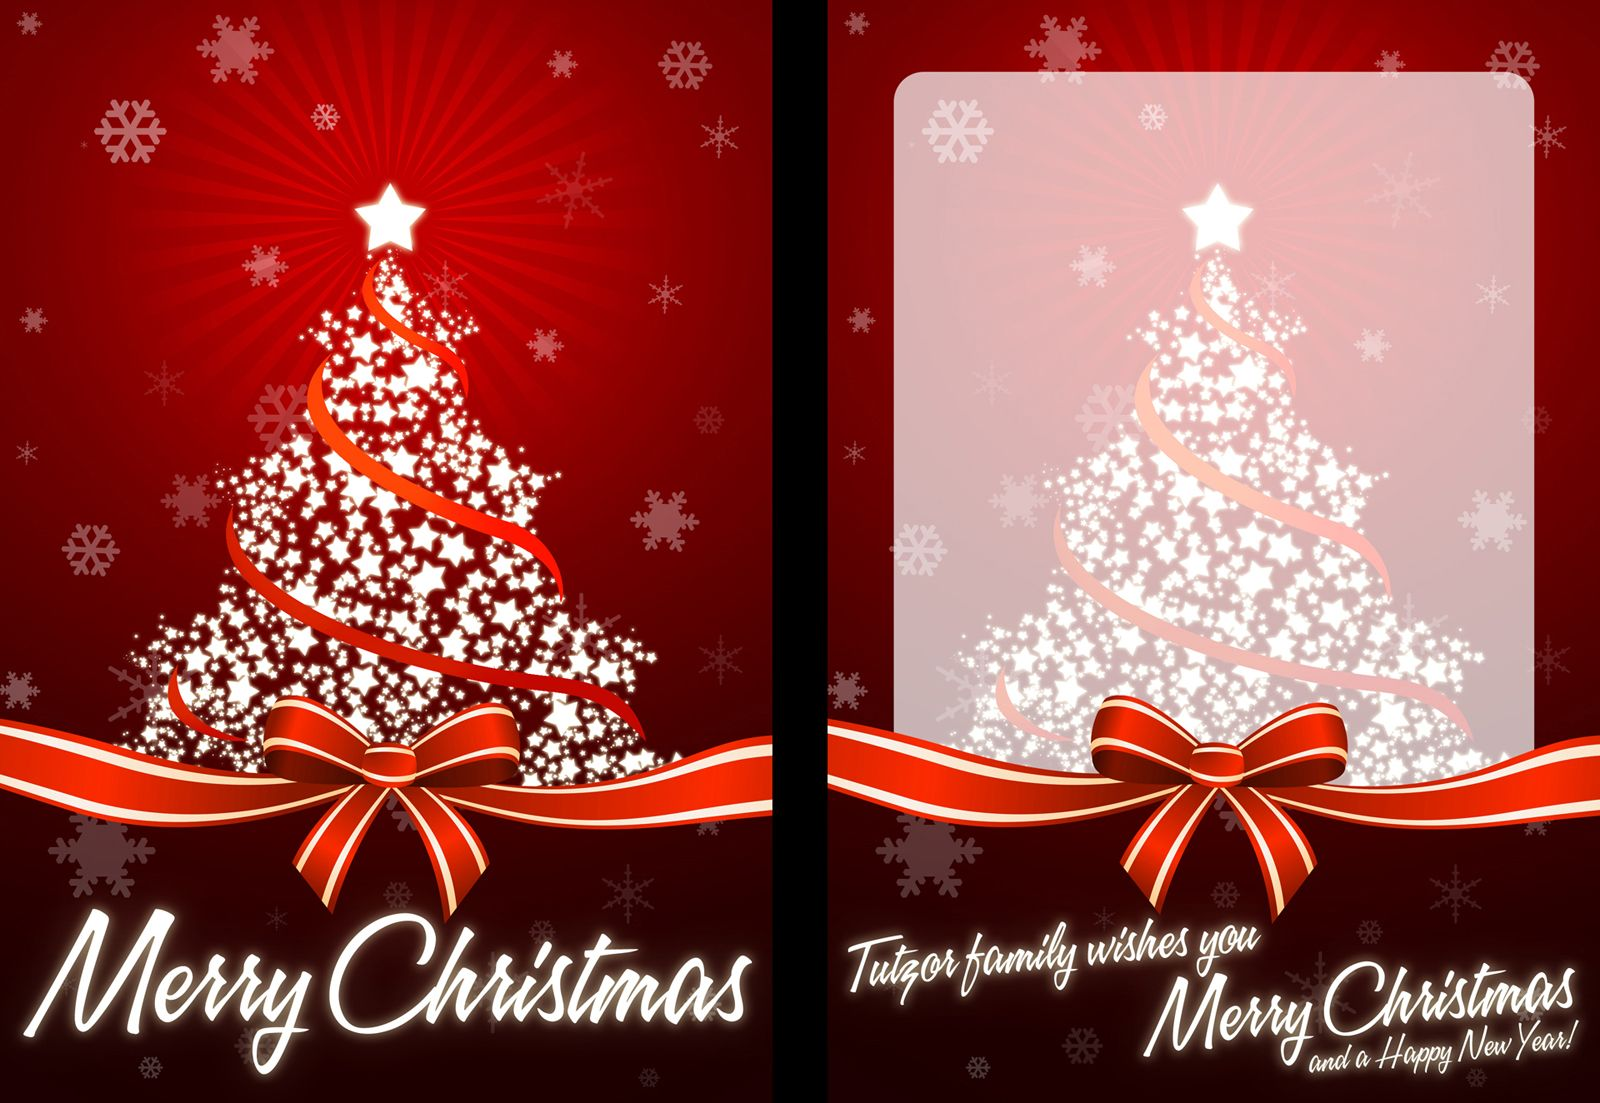 How to create your own christmas card ready for print tutzor how to create your own christmas card ready for print tutzor kristyandbryce Images